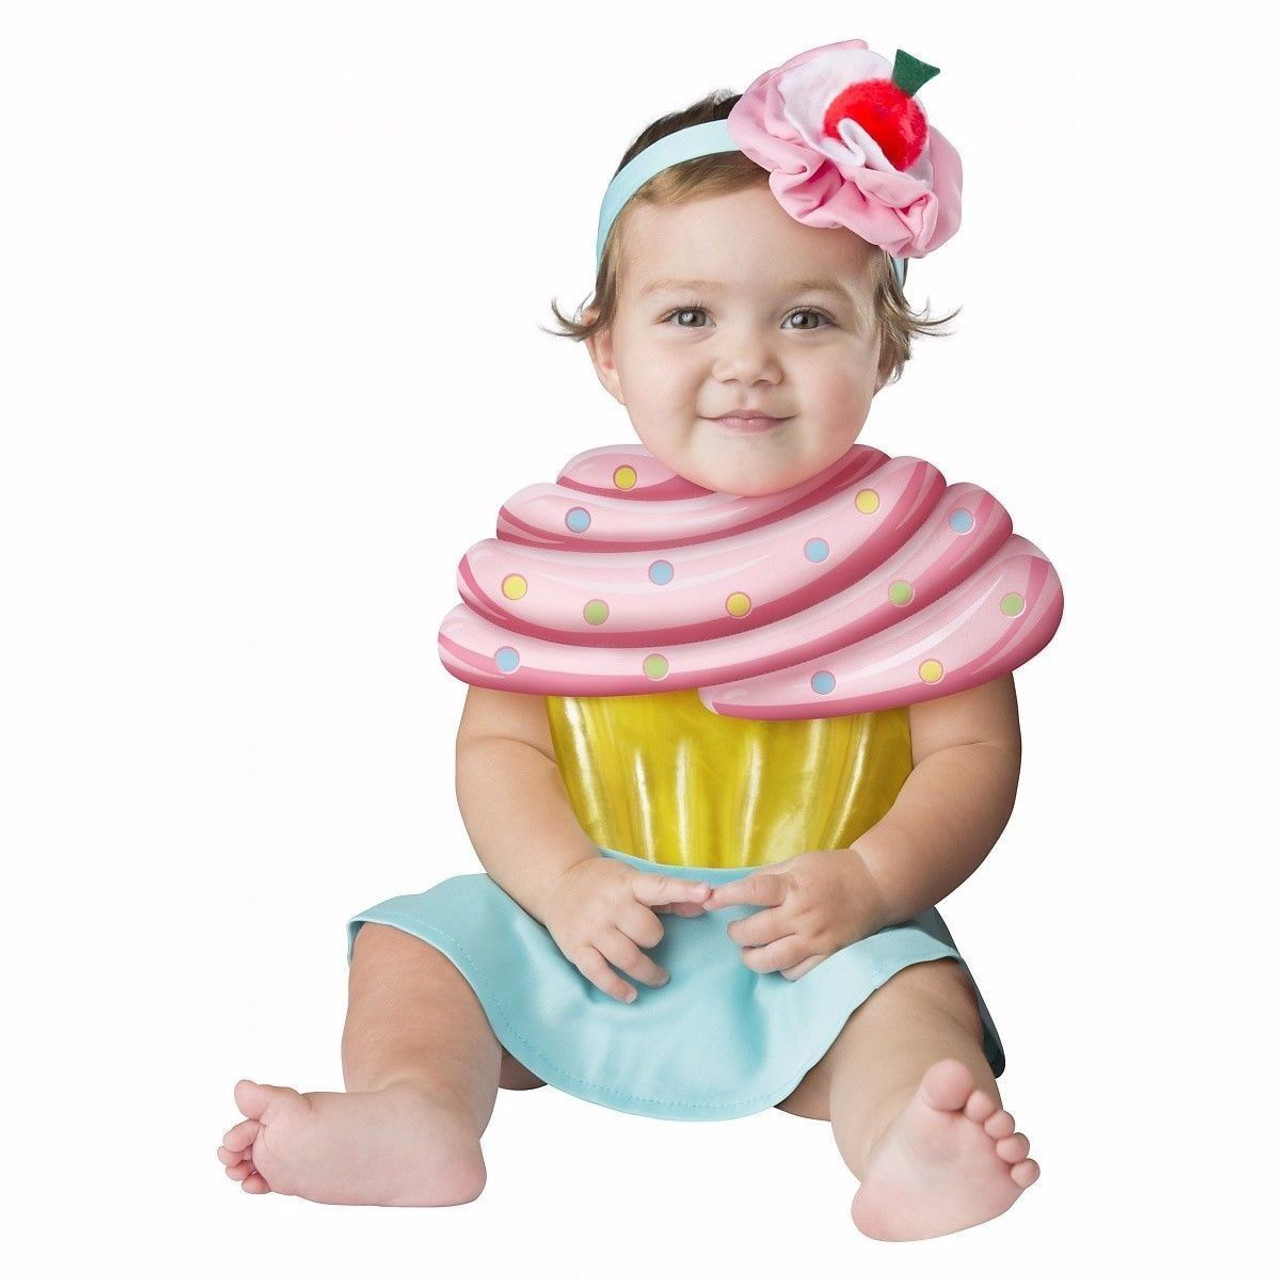 Incharacter Cupcake Cutie Candy Sweet Girls Infant Baby Halloween Costume 16074  sc 1 st  Fearless Apparel & Incharacter Cupcake Cutie Candy Sweet Girls Infant Baby Halloween ...